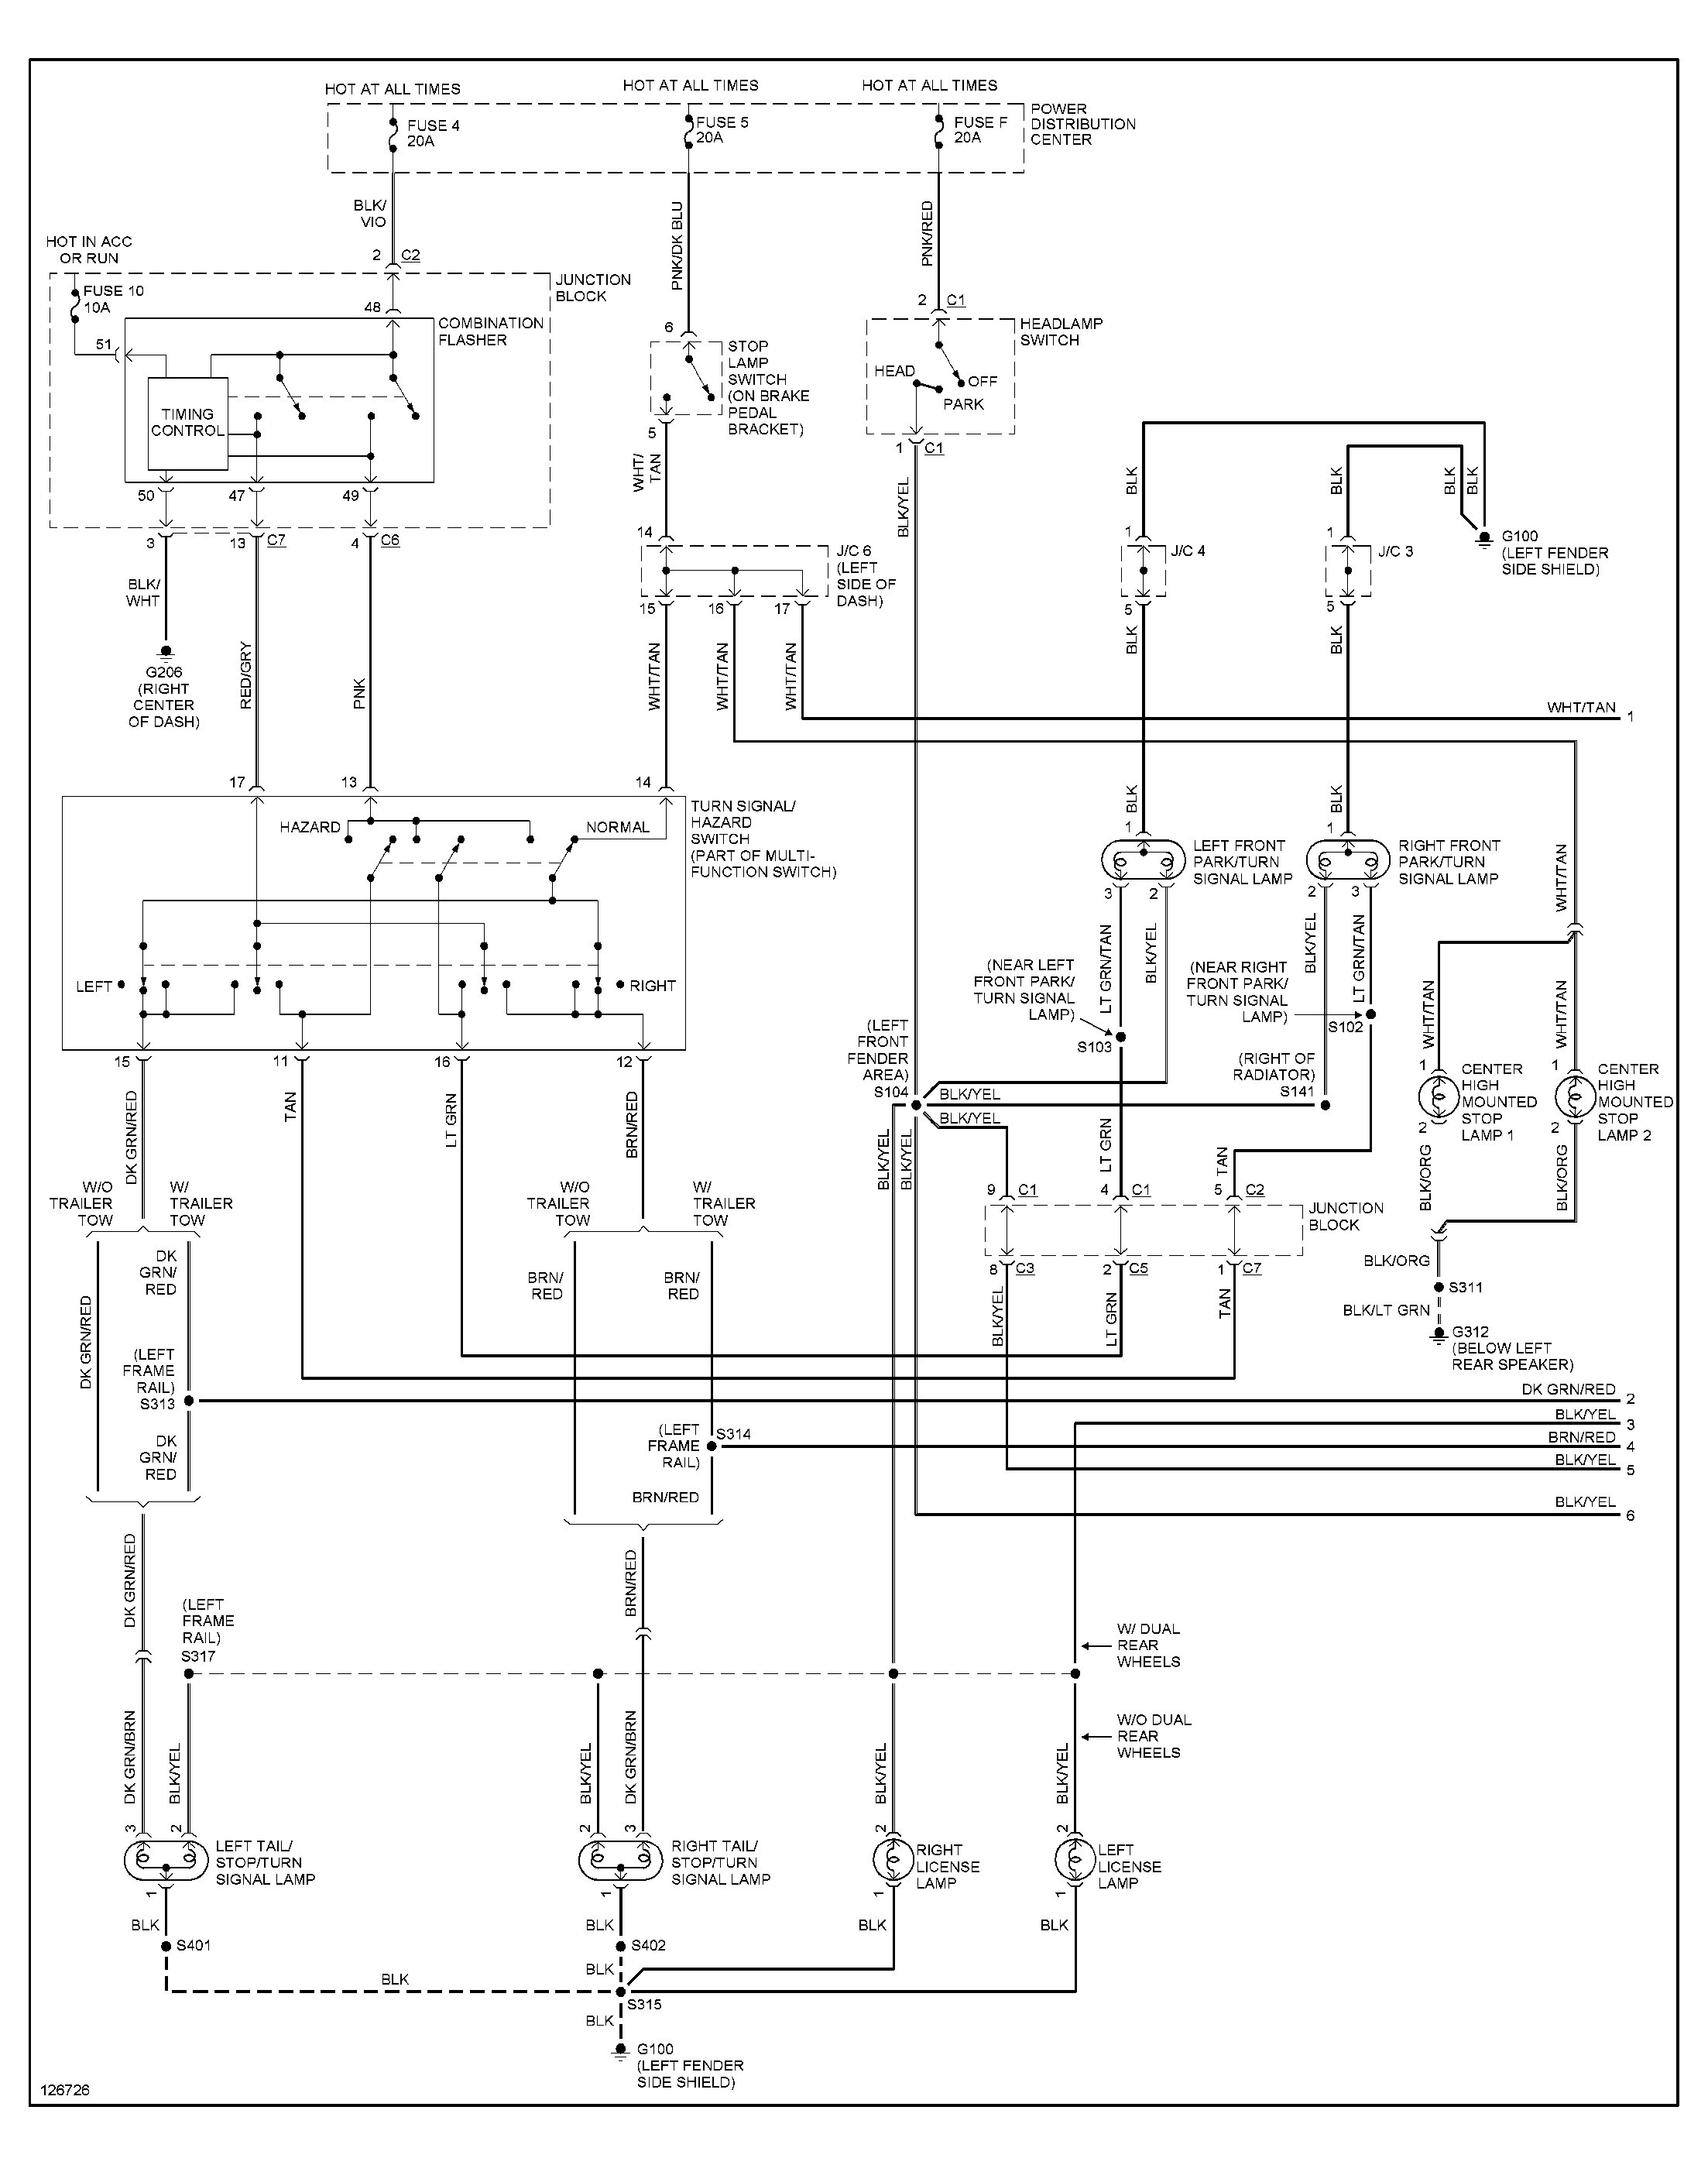 Tail Light Wiring Diagram 2005 Dodge Ram -2003 Mercedes C230 Wiring Diagram  | Begeboy Wiring Diagram SourceBegeboy Wiring Diagram Source